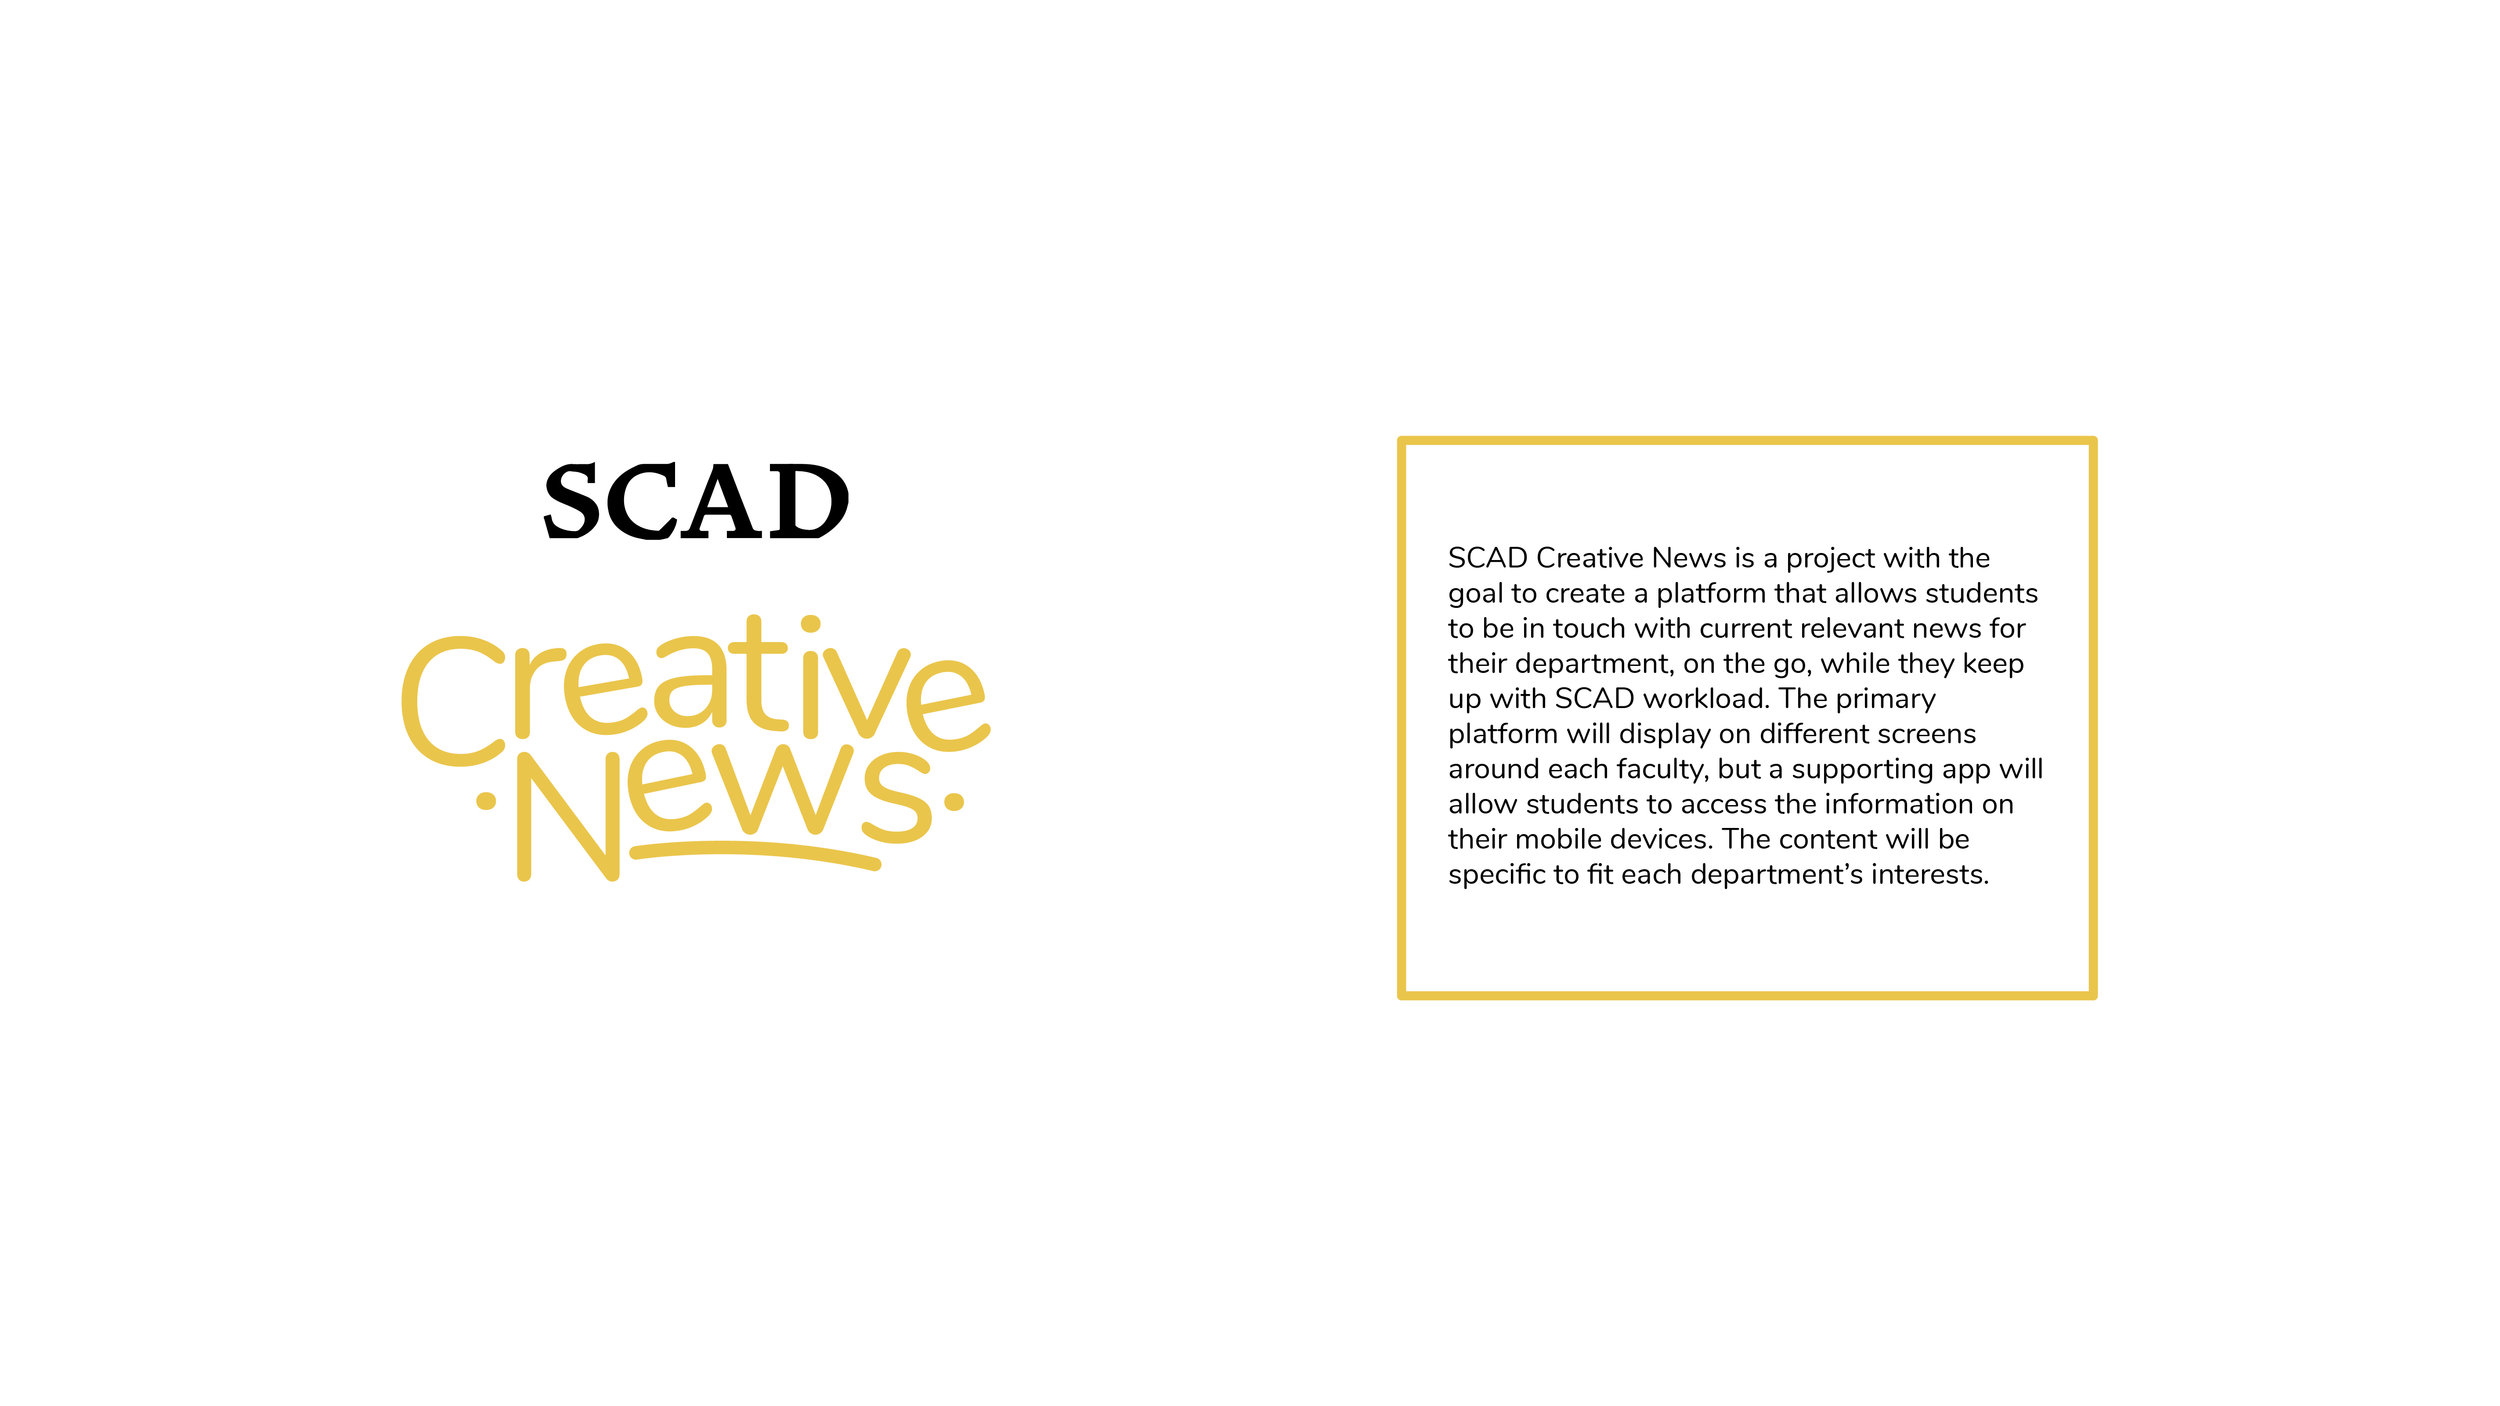 SCAD Creative News App